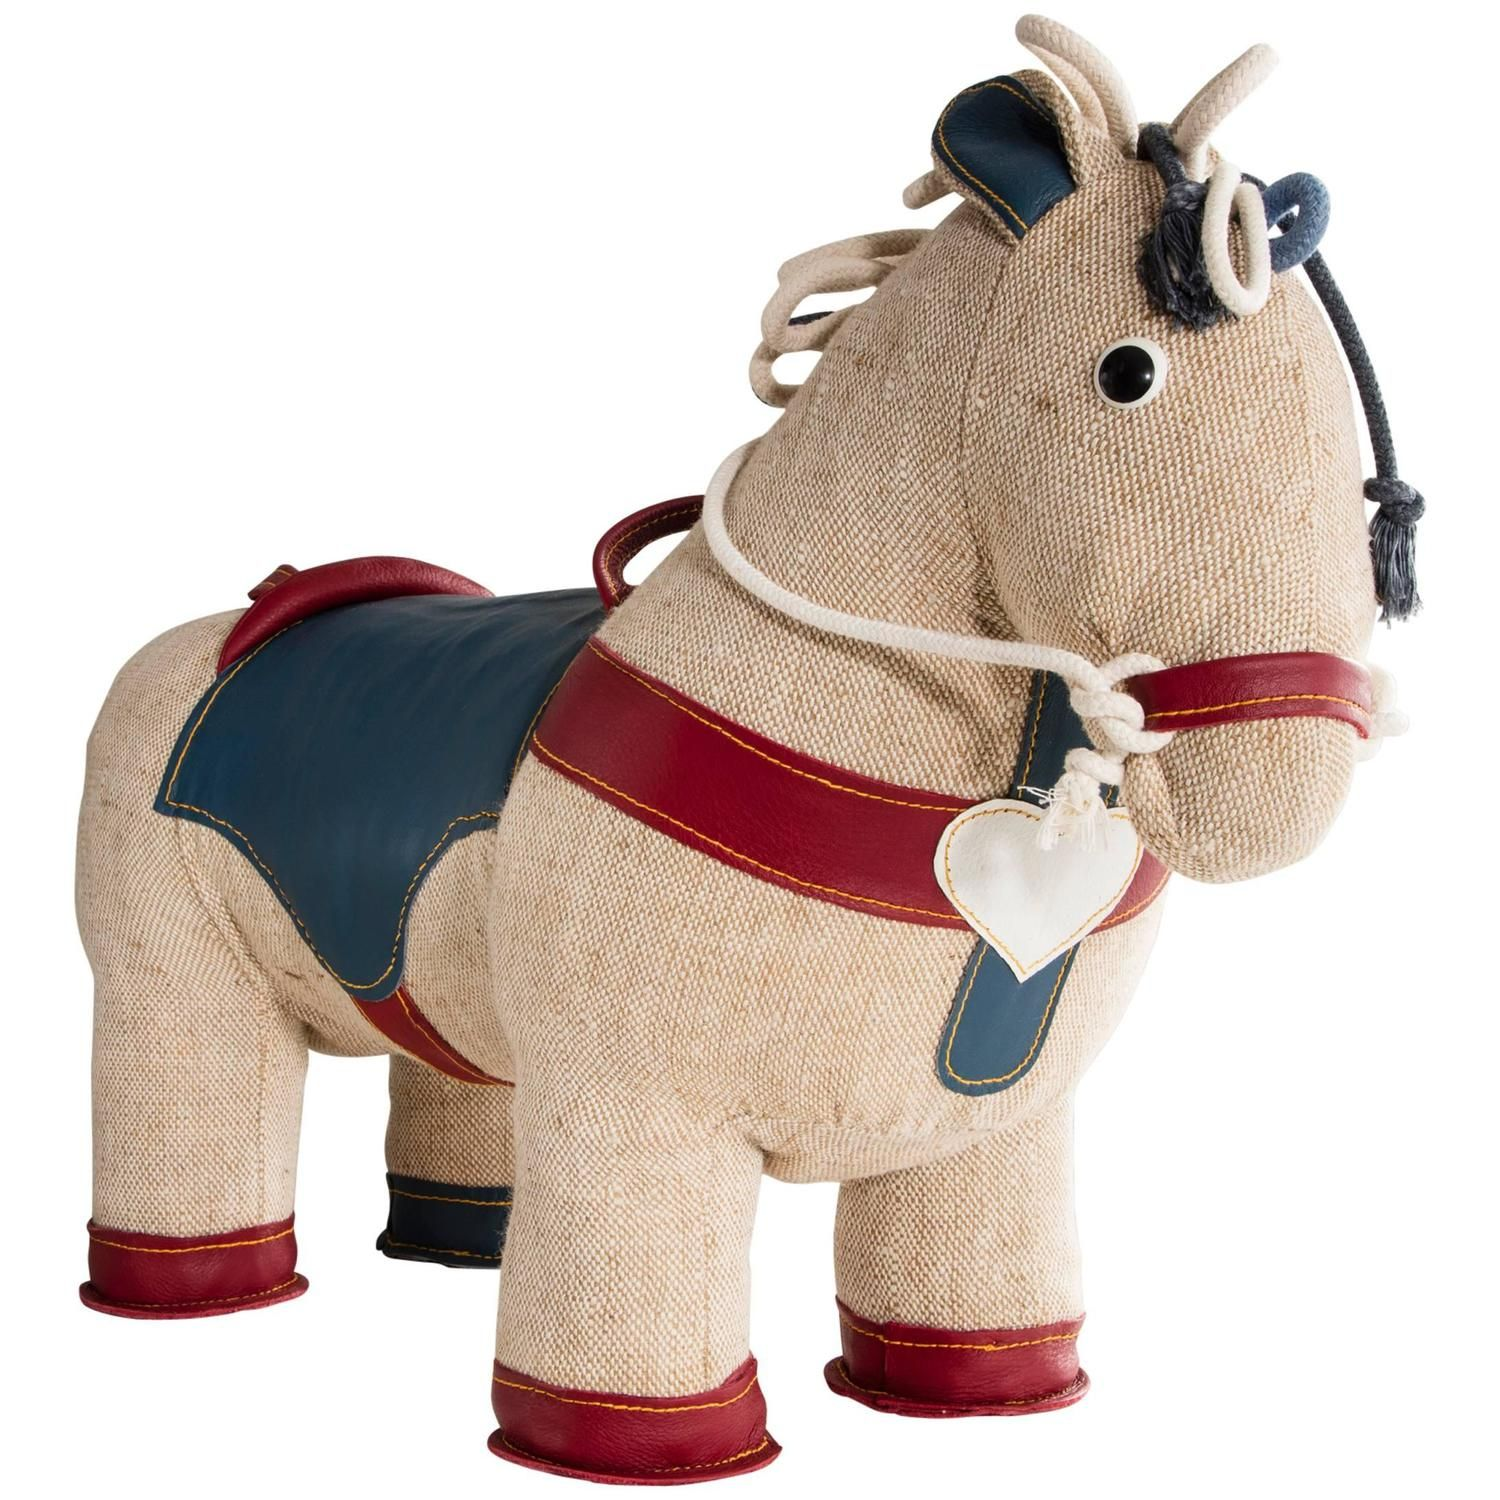 Therapeutic Toy Pony by Renate Muller, Germany, 2015   From a unique collection of antique and modern toys at https://www.1stdibs.com/furniture/more-furniture-collectibles/toys/